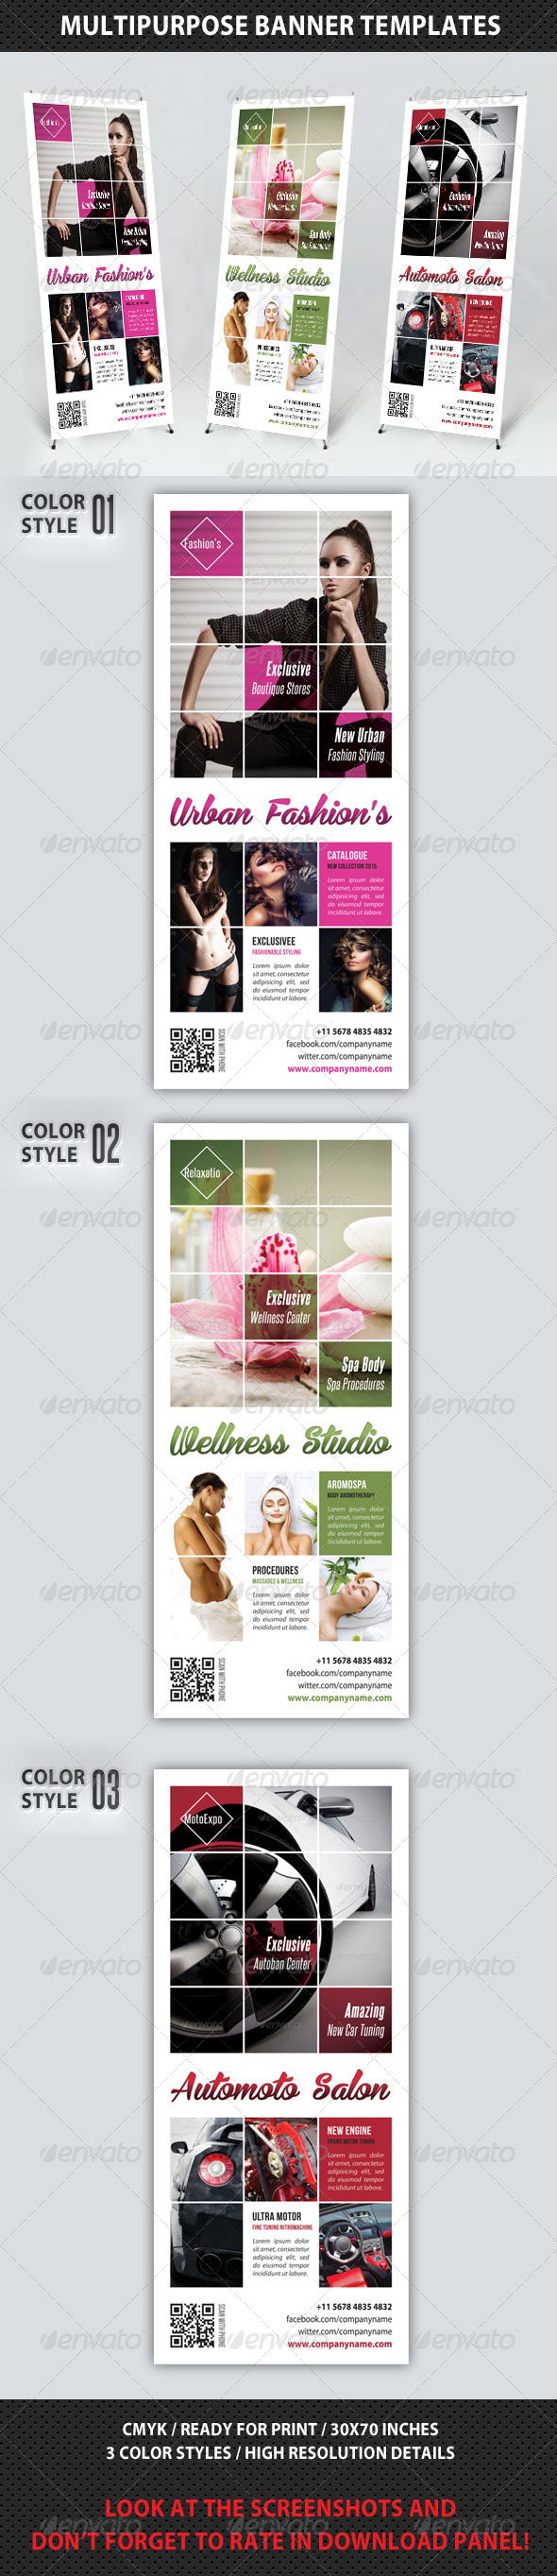 GraphicRiver Multipurpose Banner Template V04 7695003